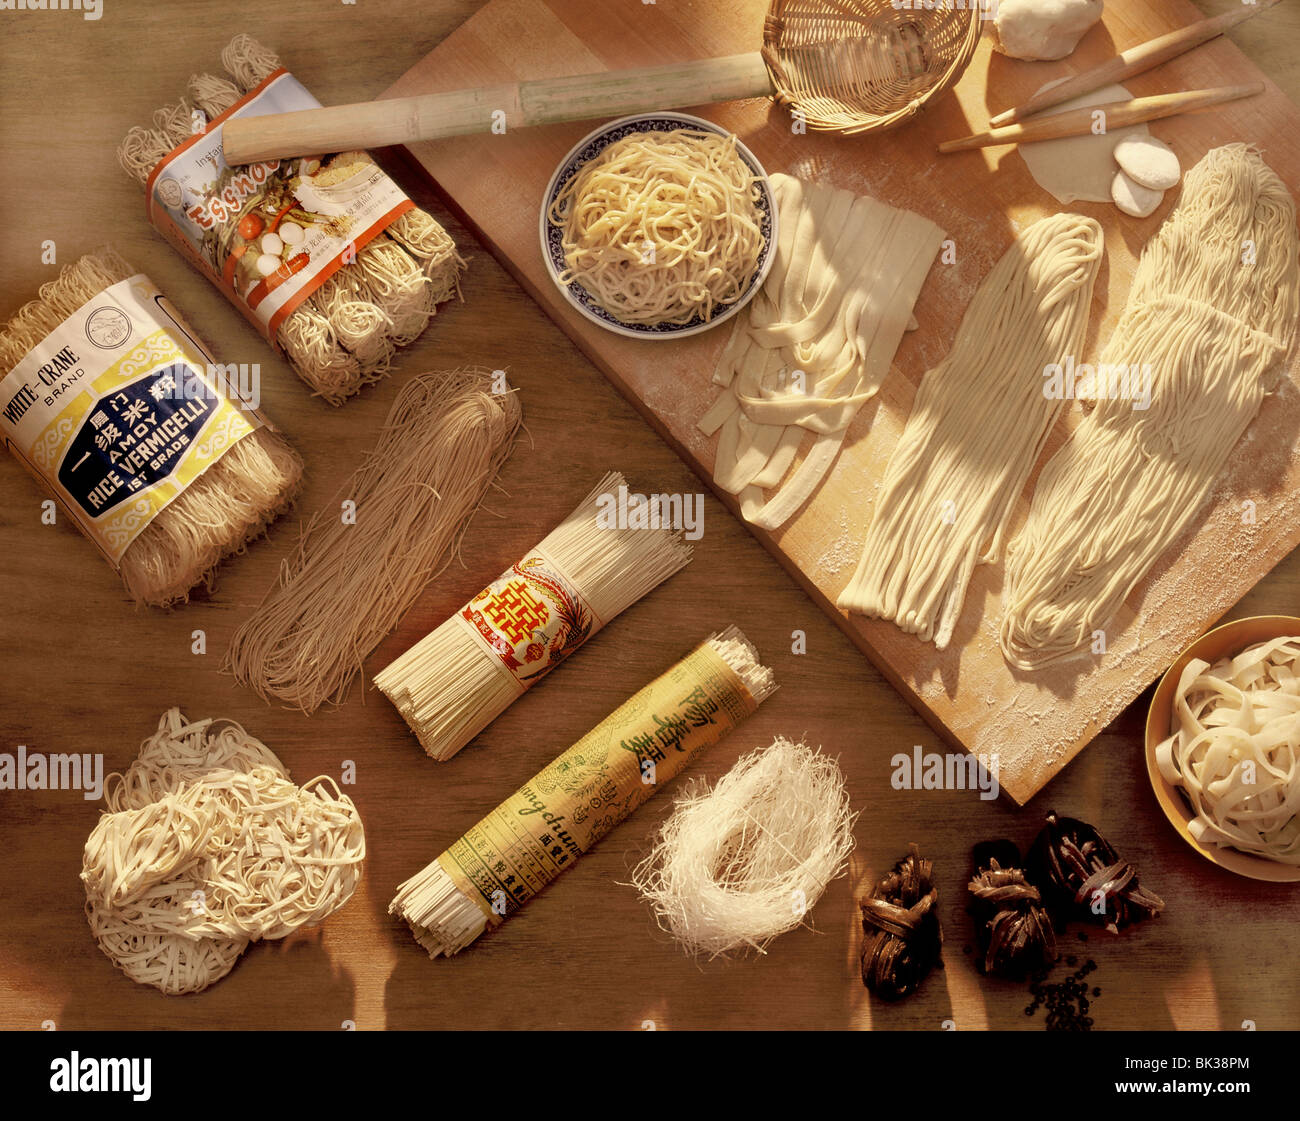 Various kinds of Chinese noodles, China, Asia - Stock Image